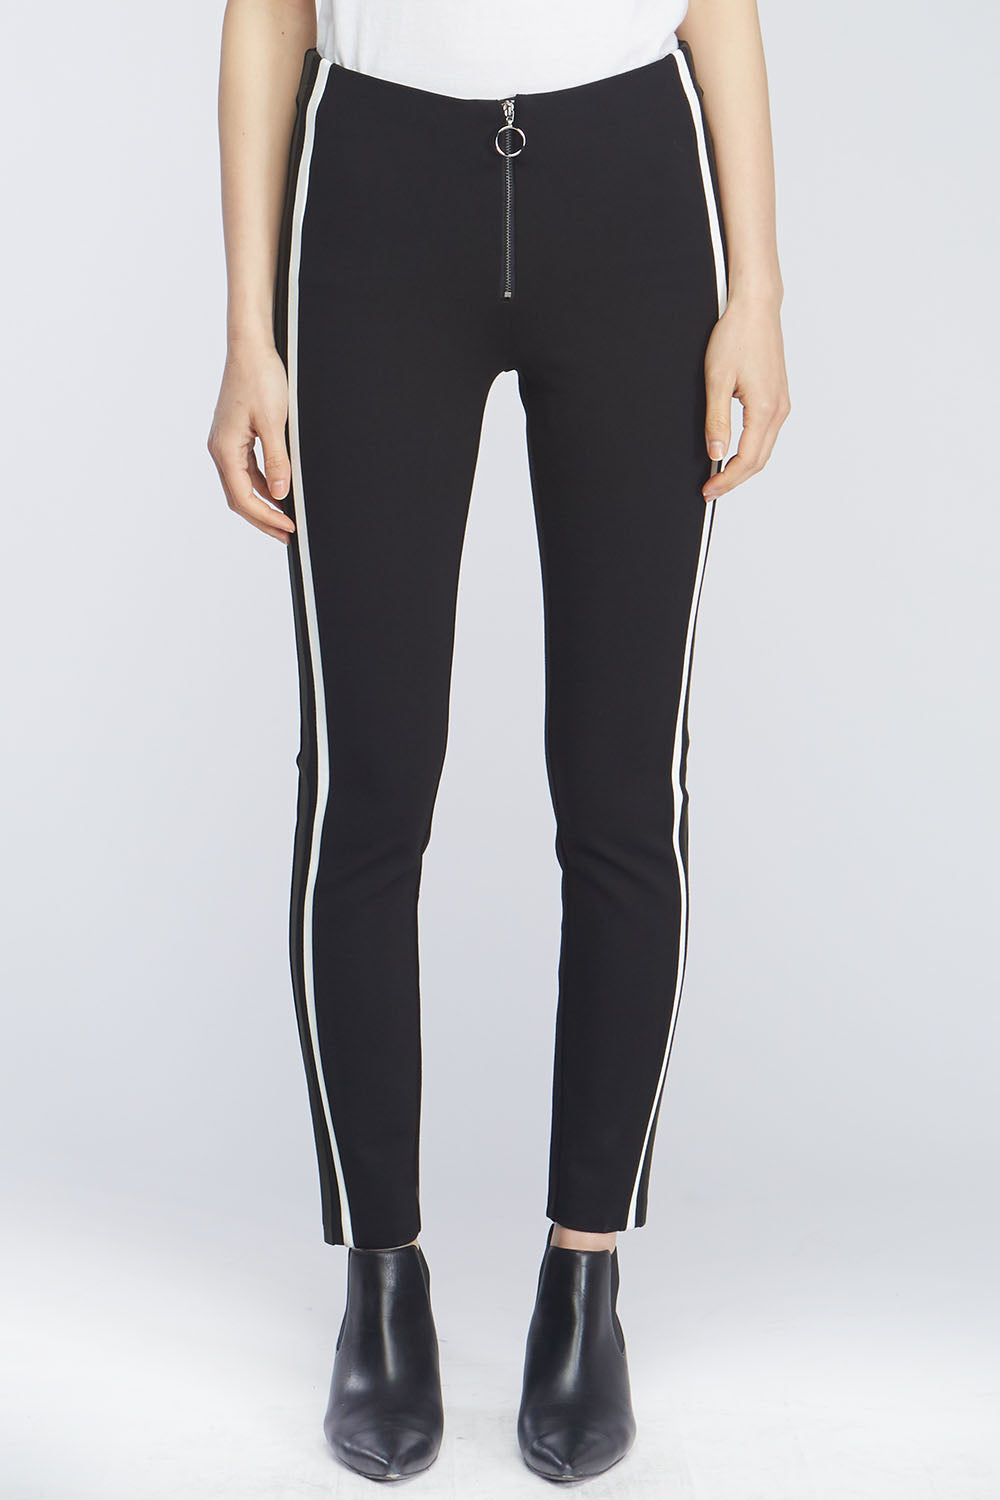 Unity Racer Stripe High-Rise Leggings